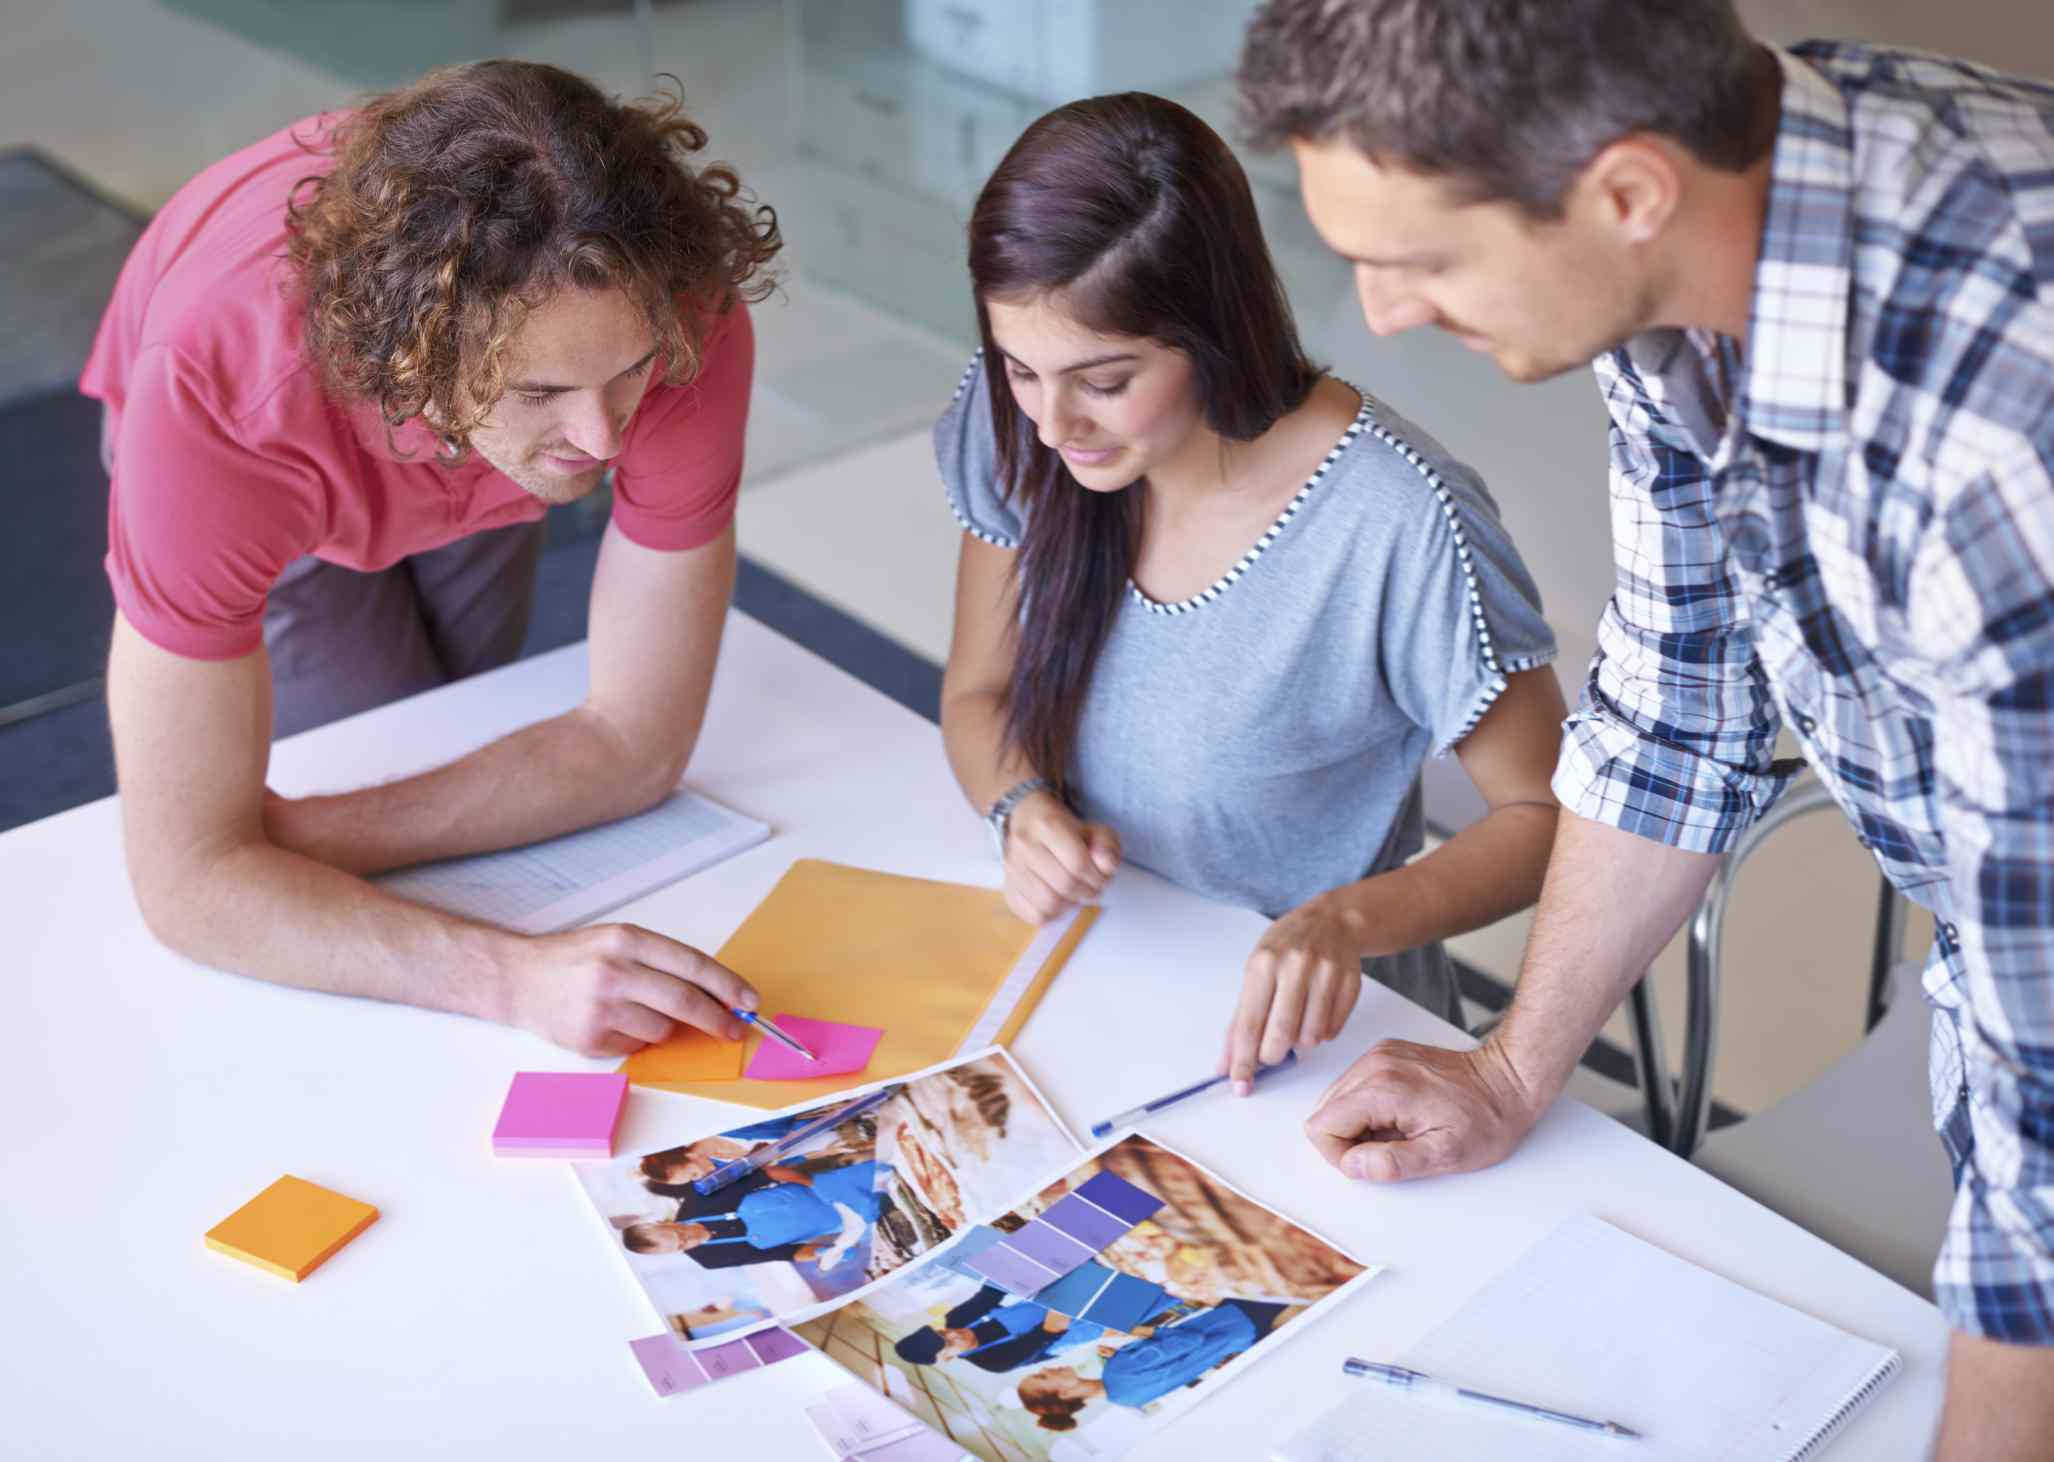 Group of people designing a marketing campaign.